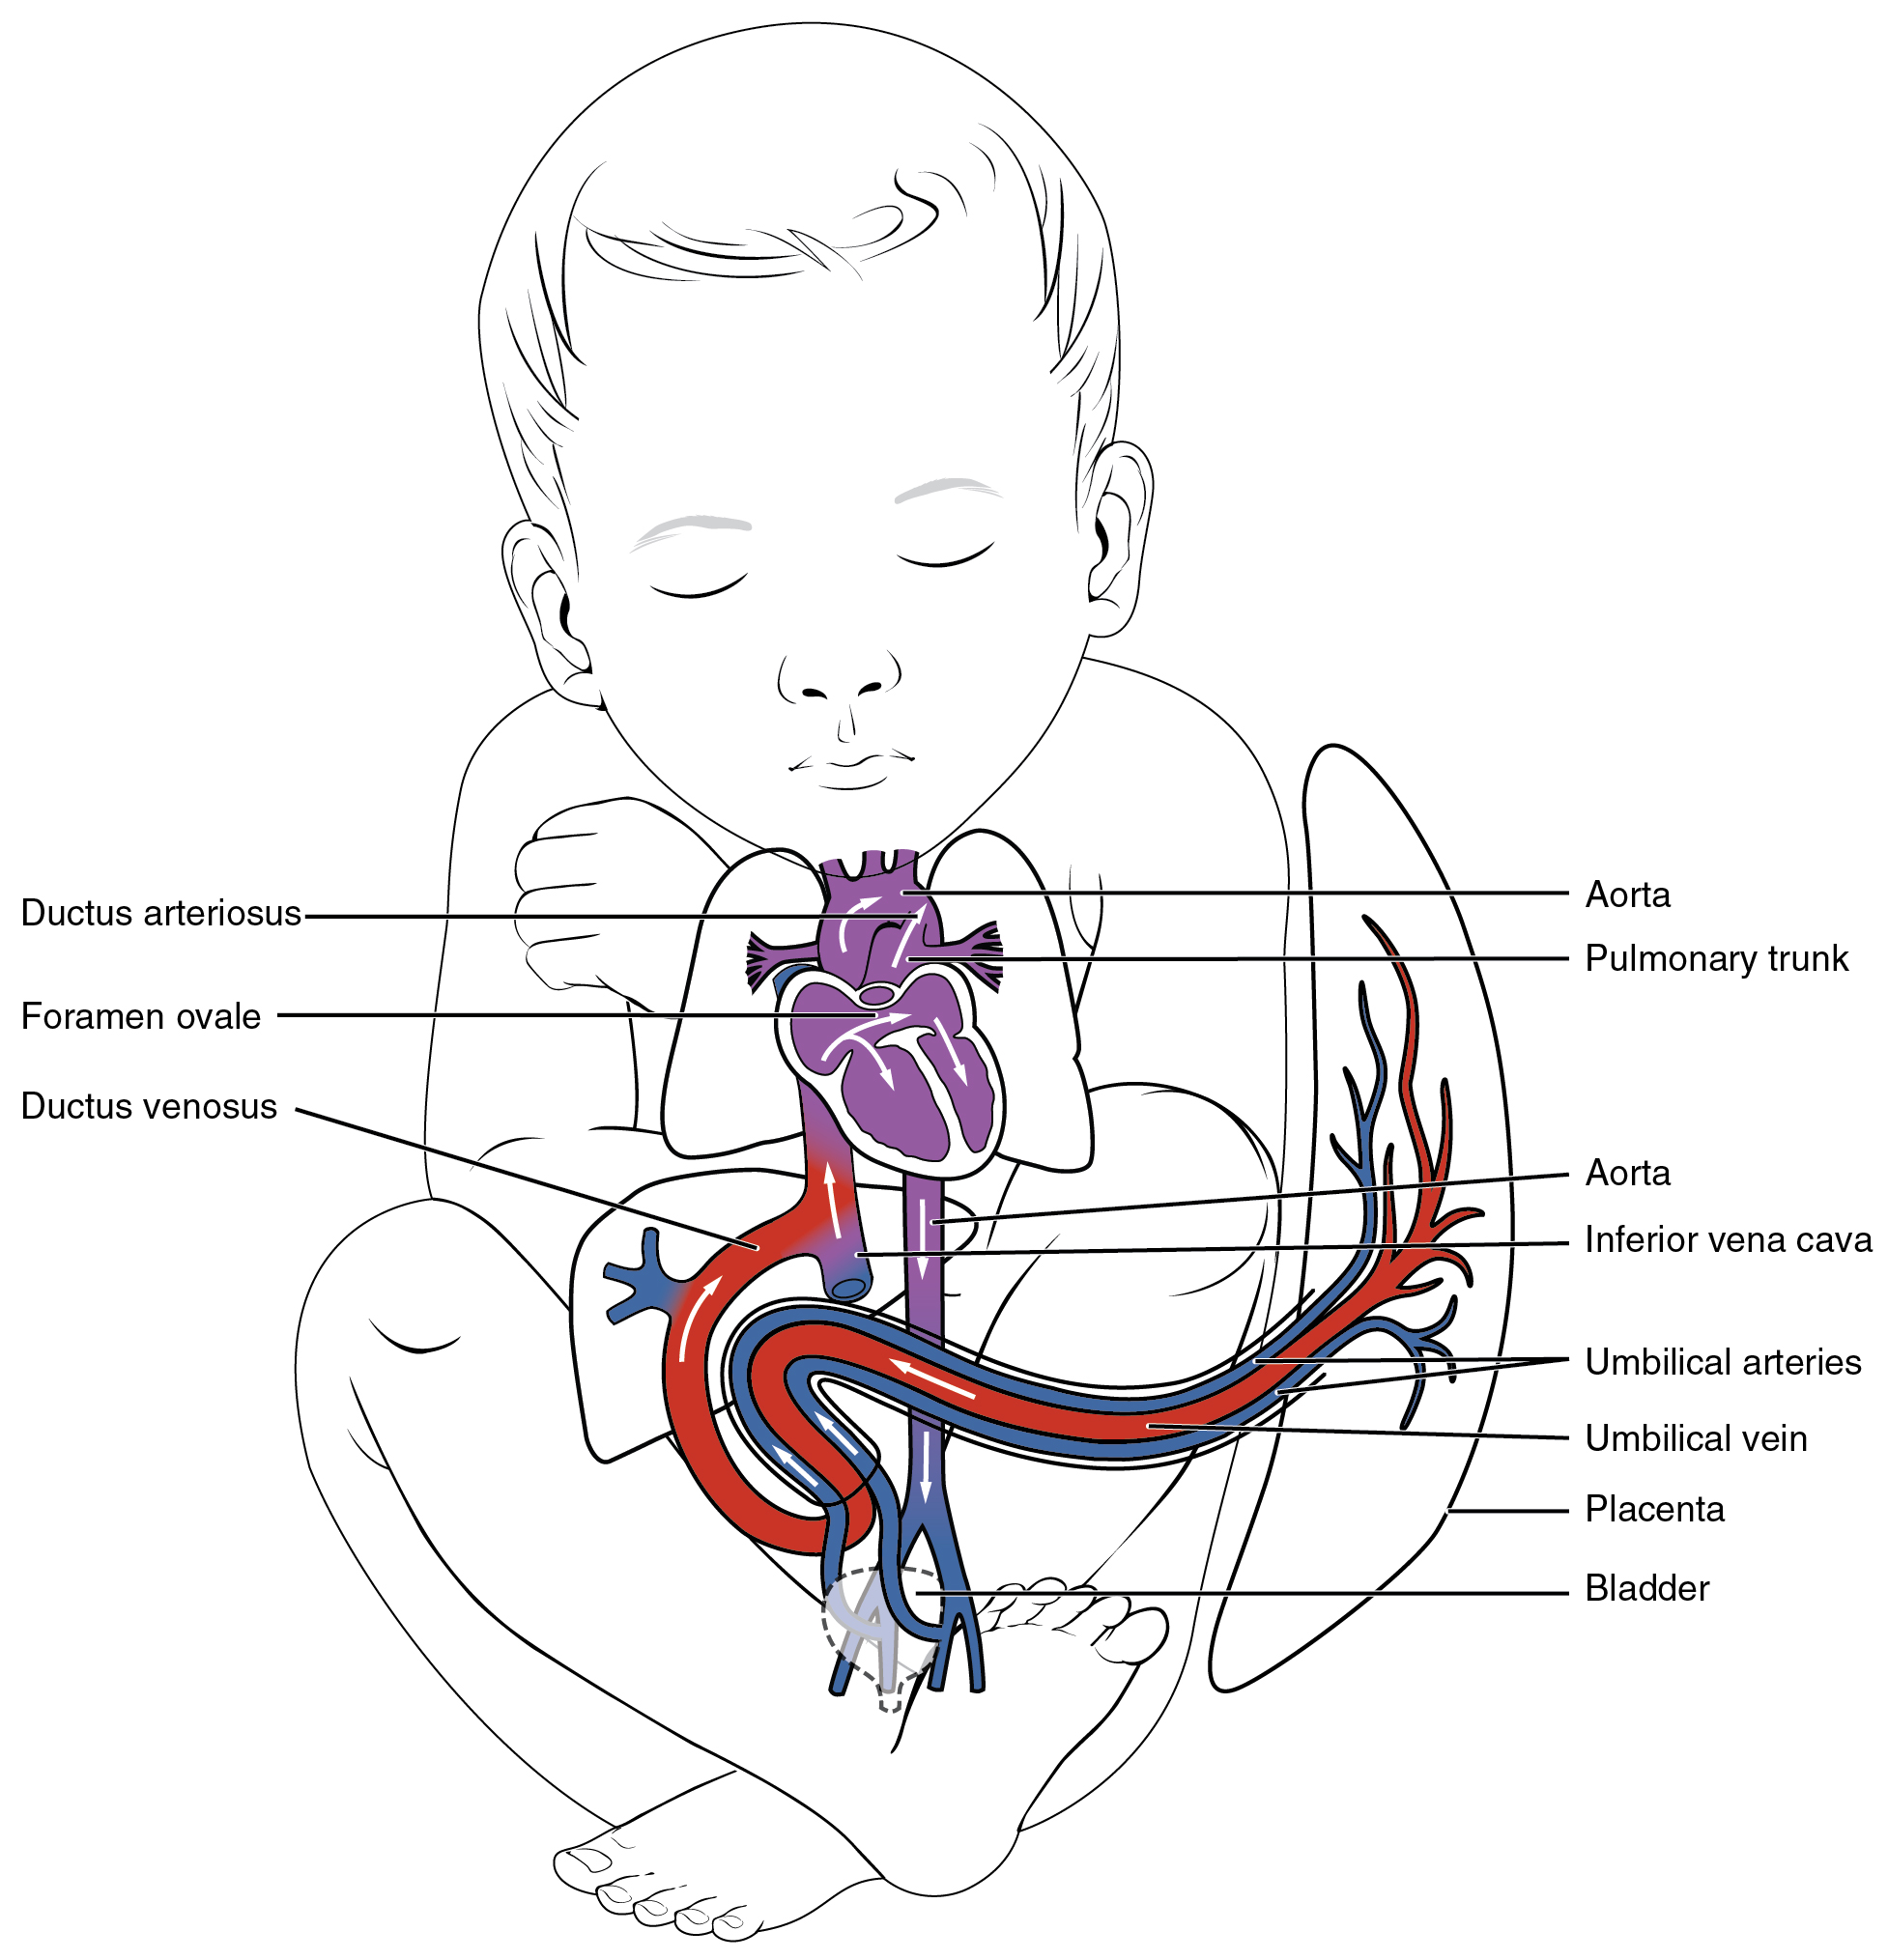 This figure shows the blood vessels in a fetus.